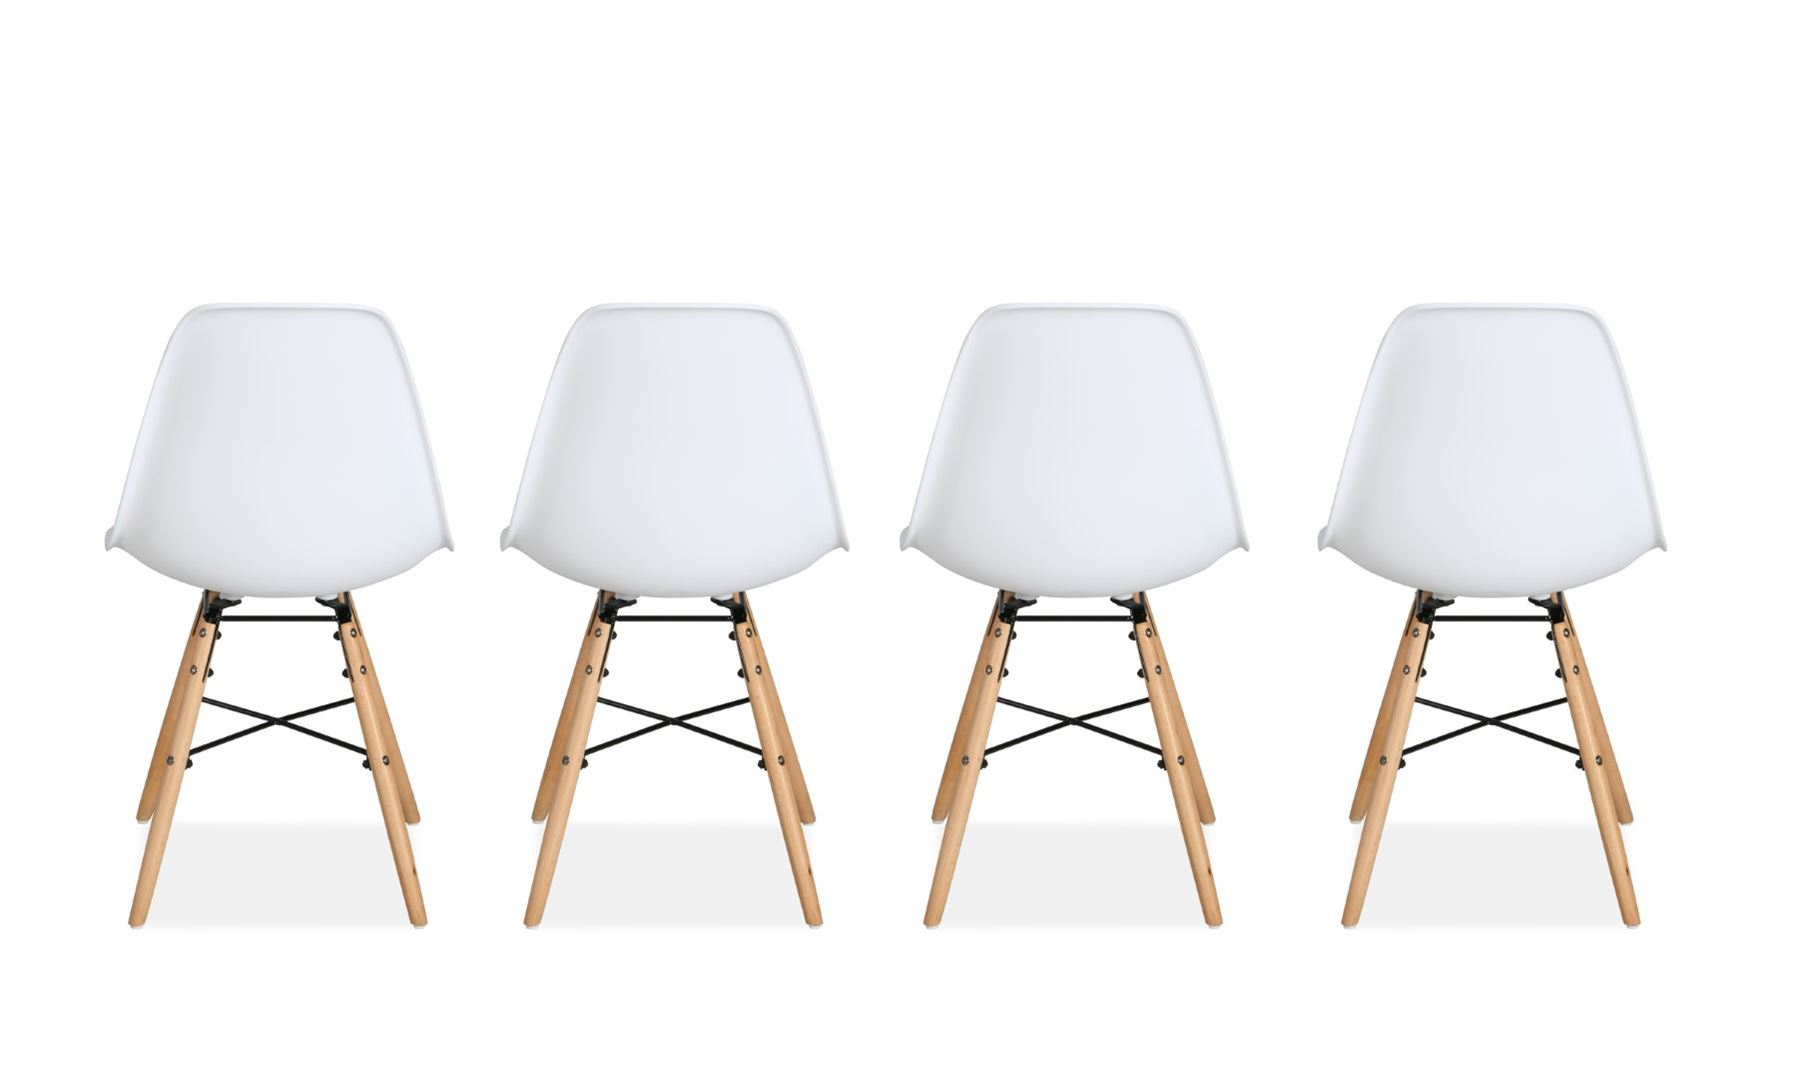 Birlea Hex 4 White Dining Chair Scandinavian Modern Retro Design Pair Wood